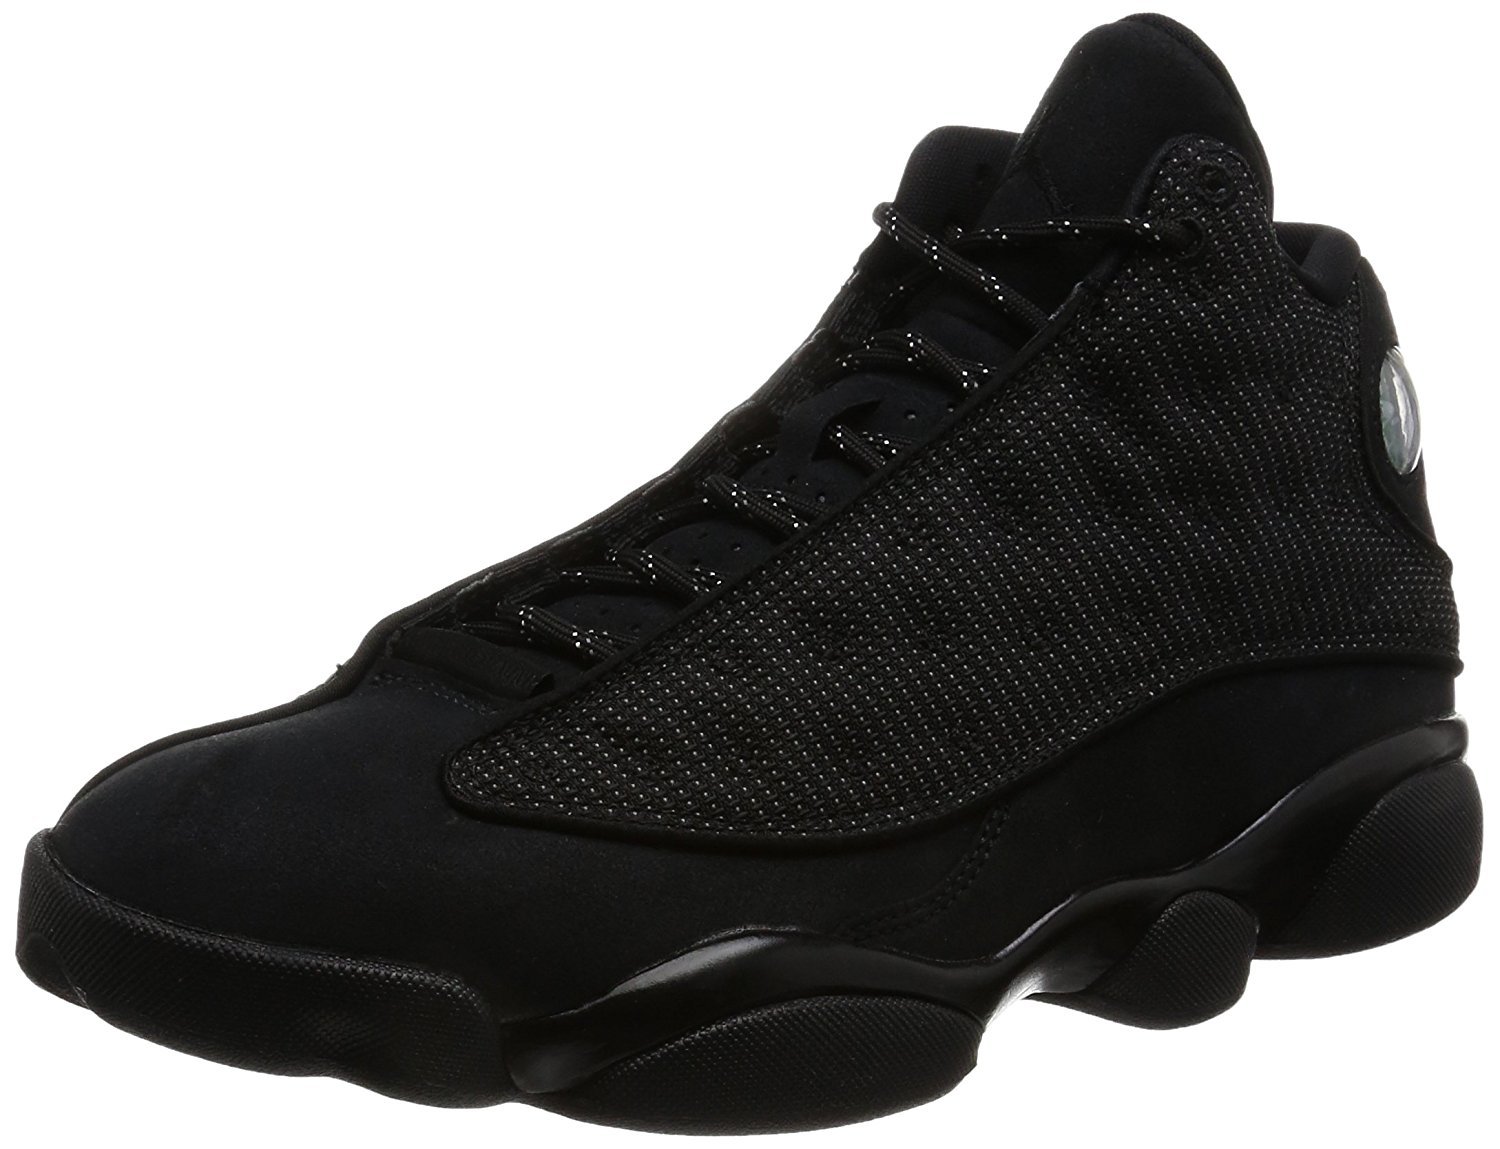 separation shoes ce6db 43ea1 Jordan Men Air Jordan 13 Retro (black   black-anthracite) Size 11.0 US